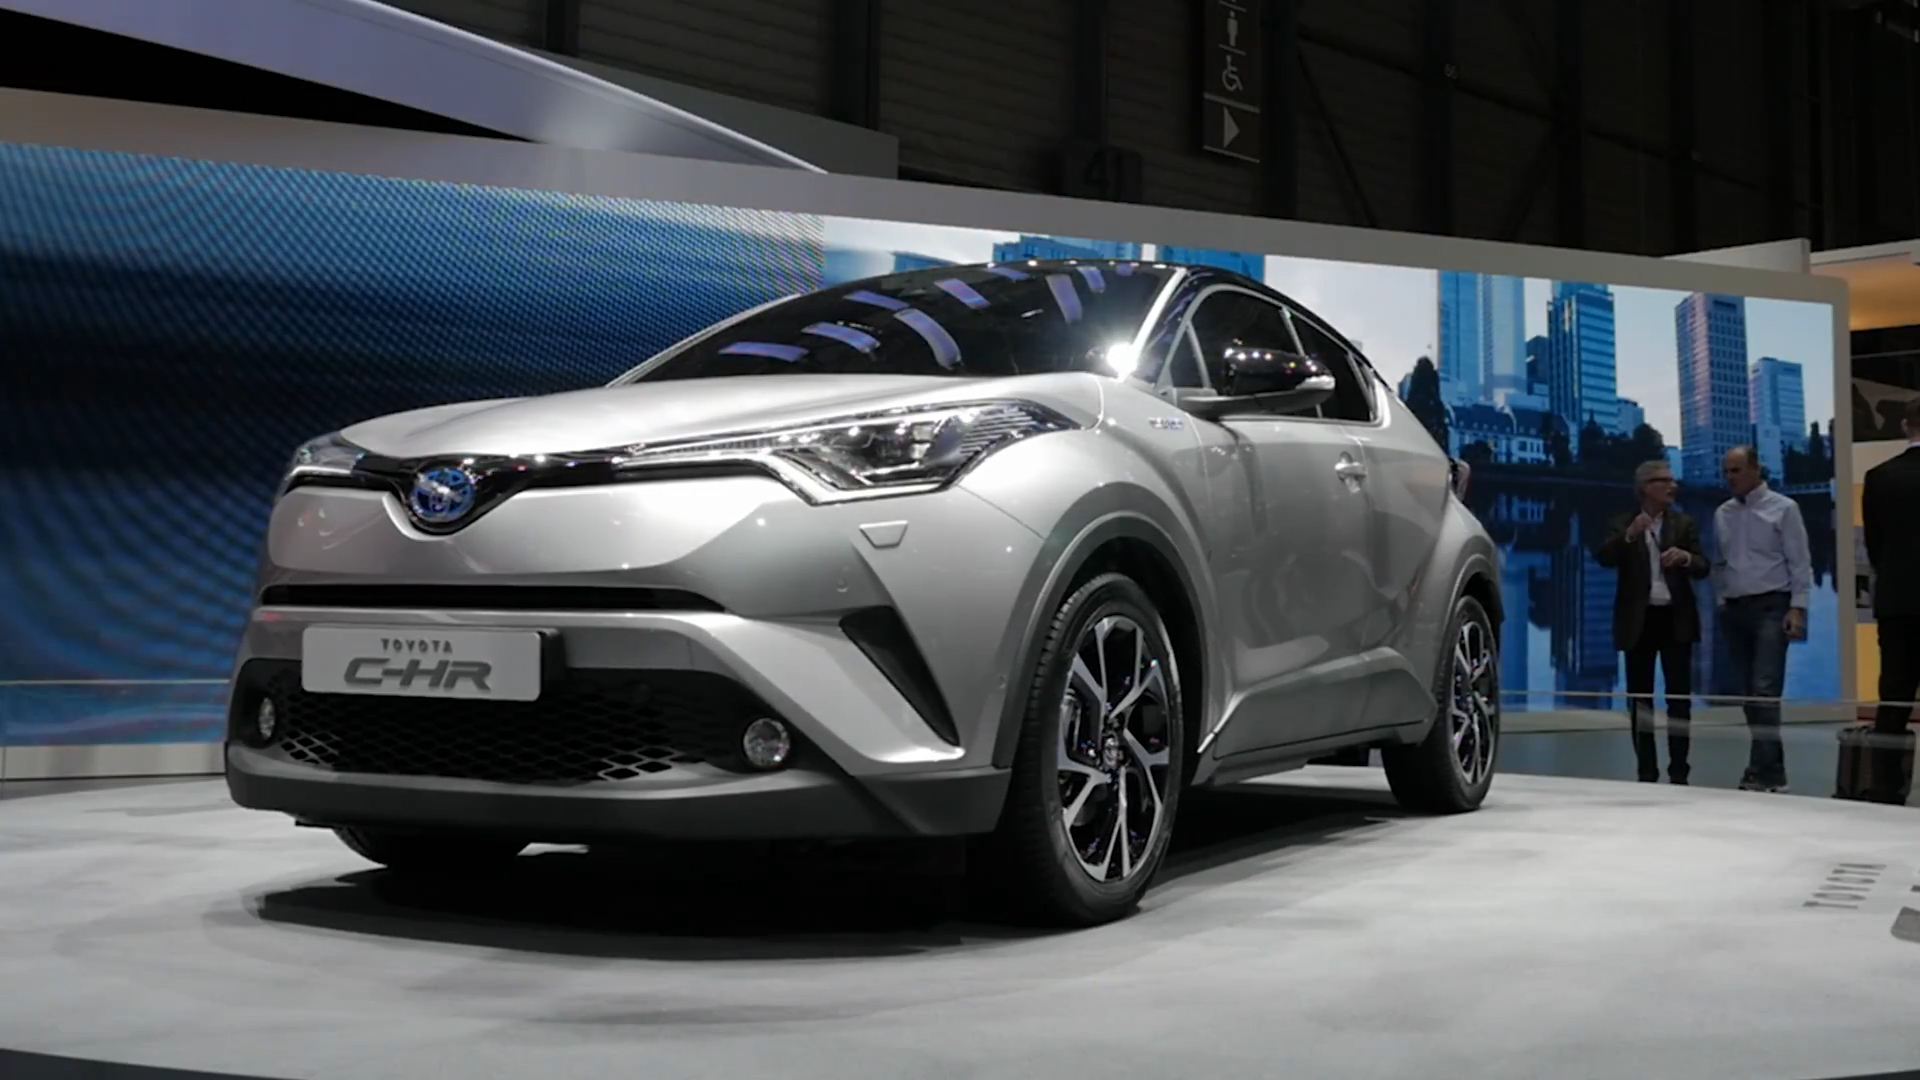 2019 toyota archives toyota cars toyota reviews